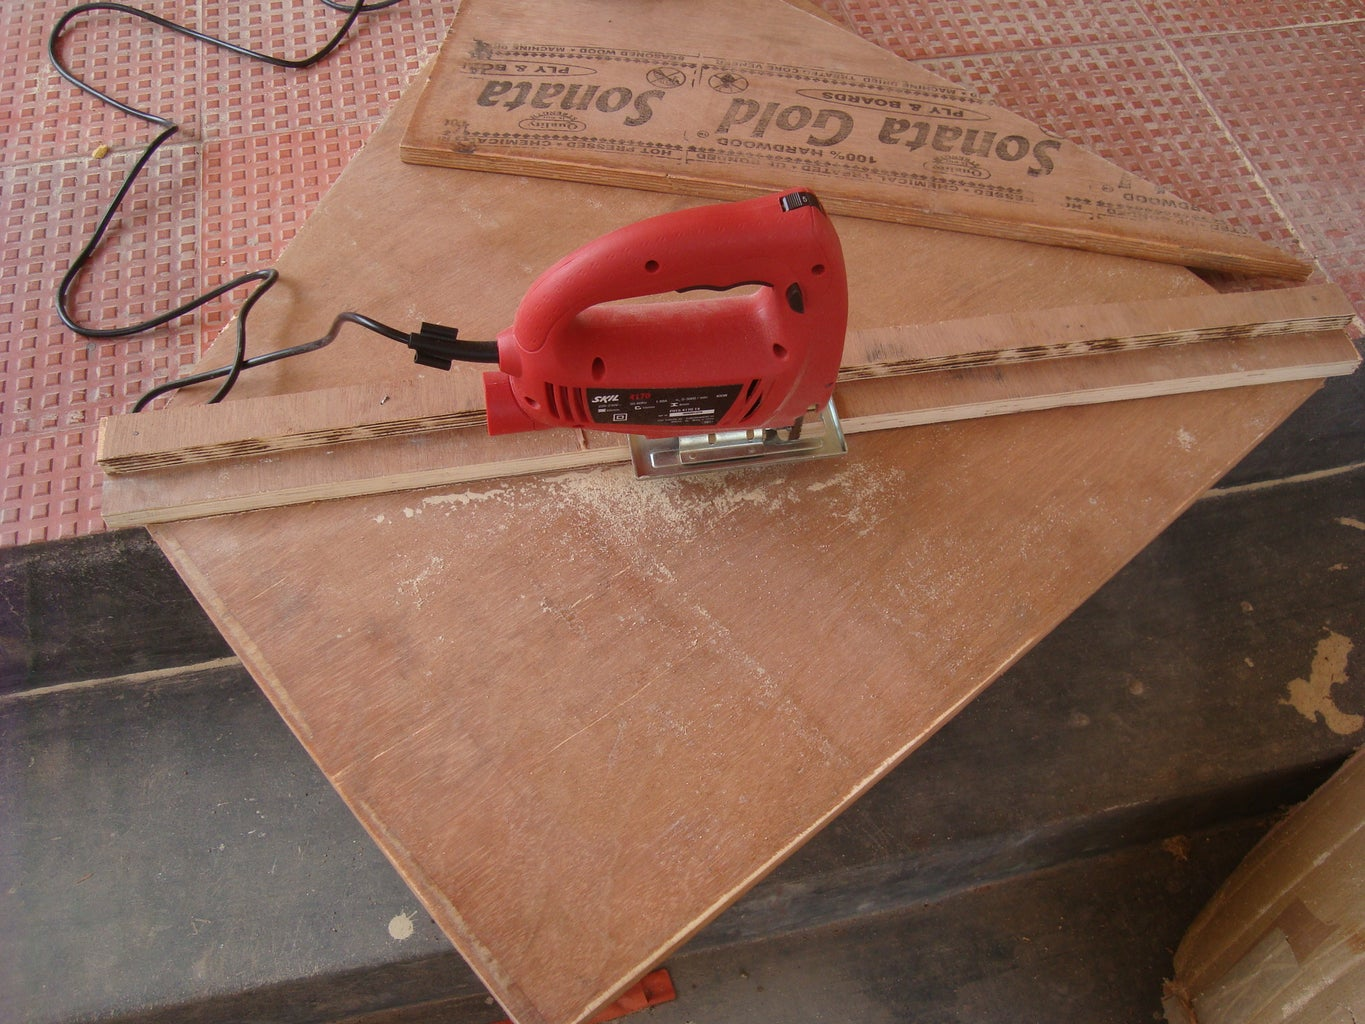 Cutting the Triangular and Small Pieces